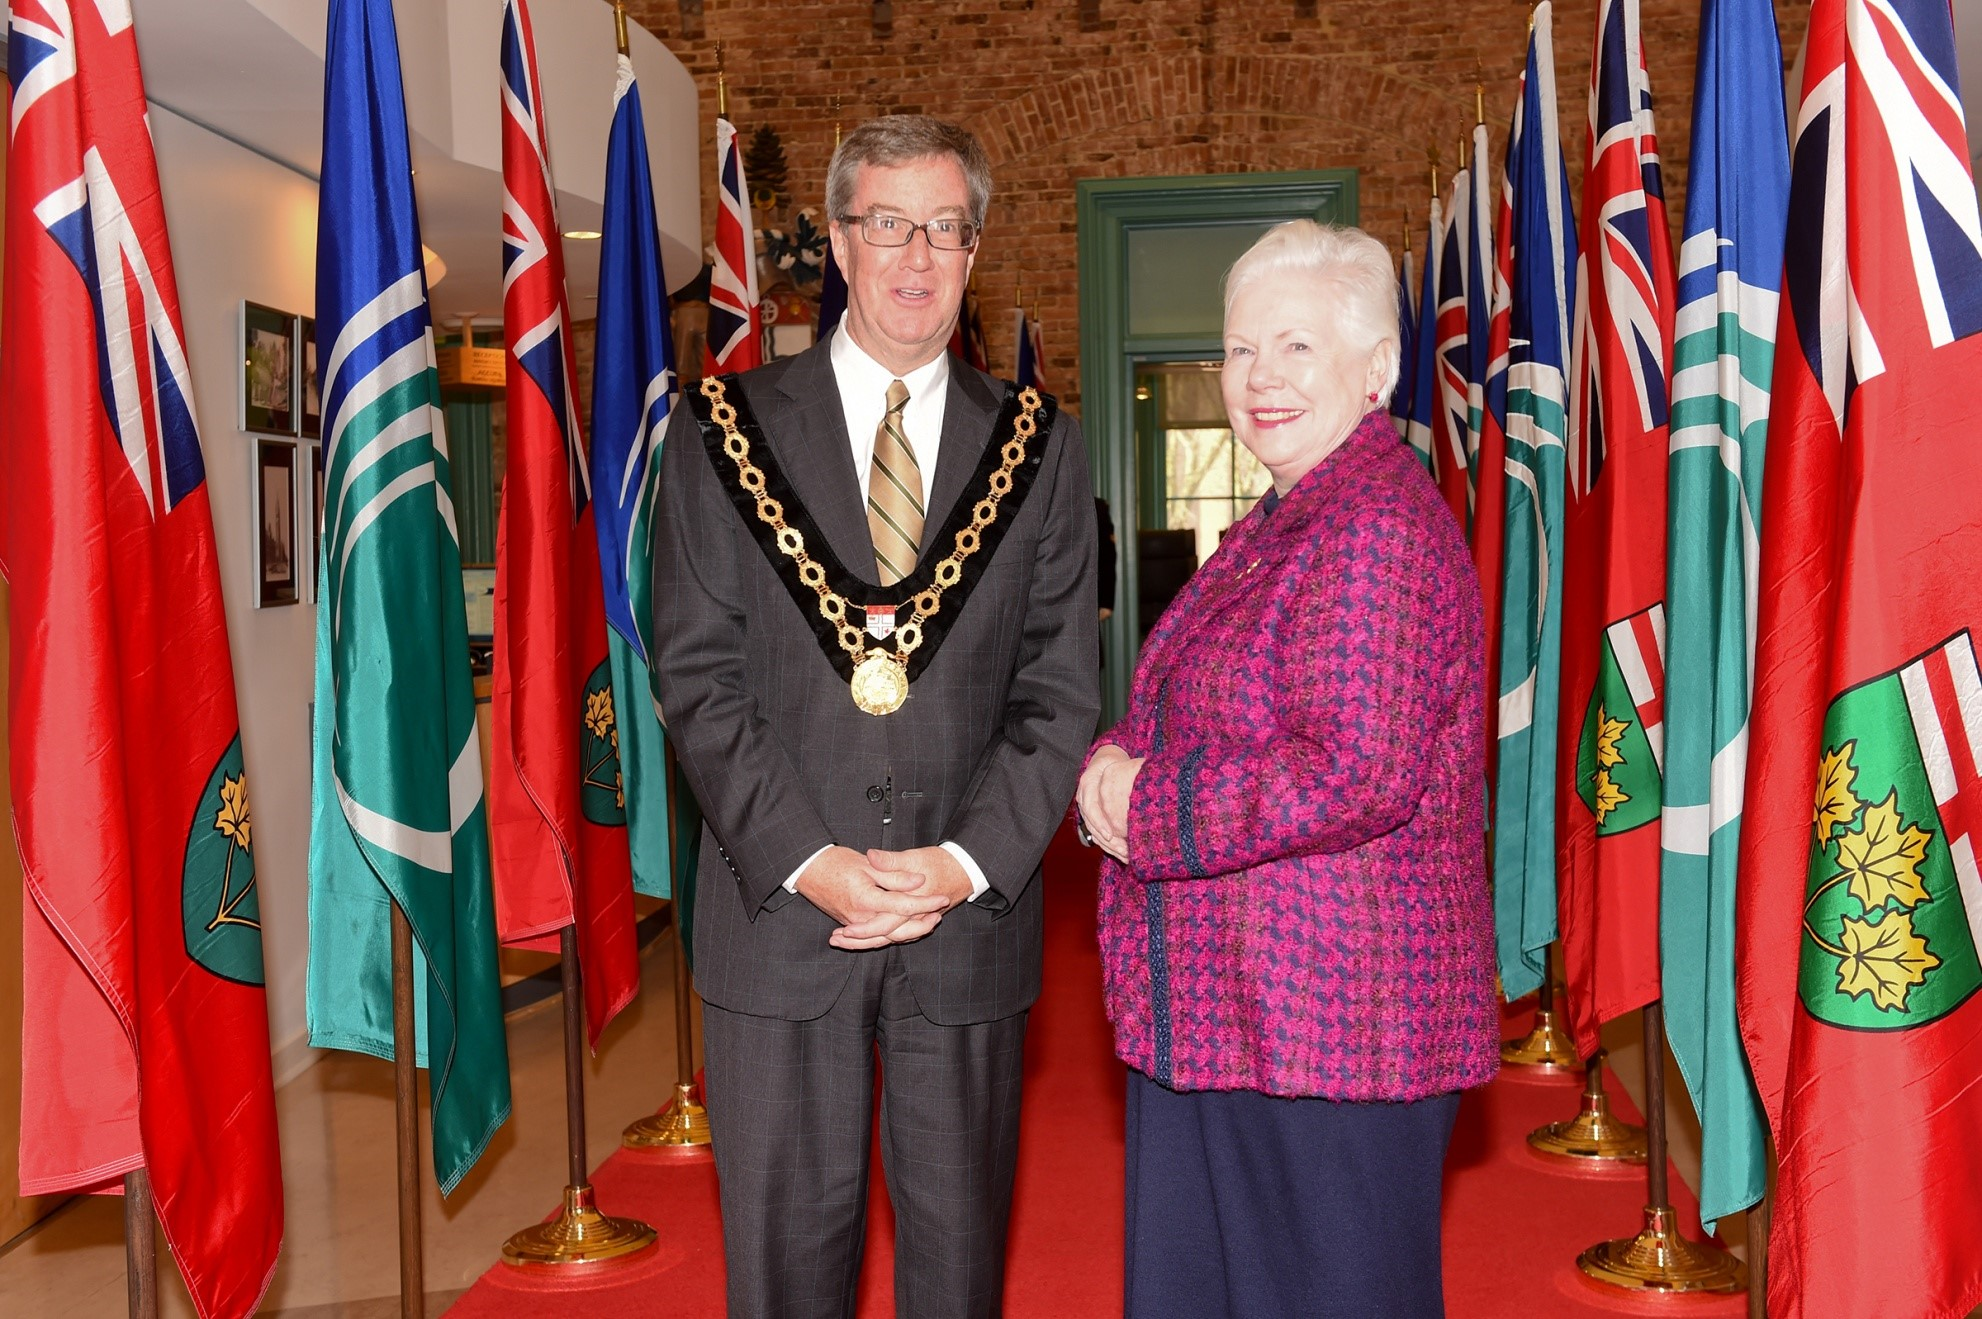 Mayor Jim Watson and Lieutenant Elizabeth Dowdeswell standing by flags